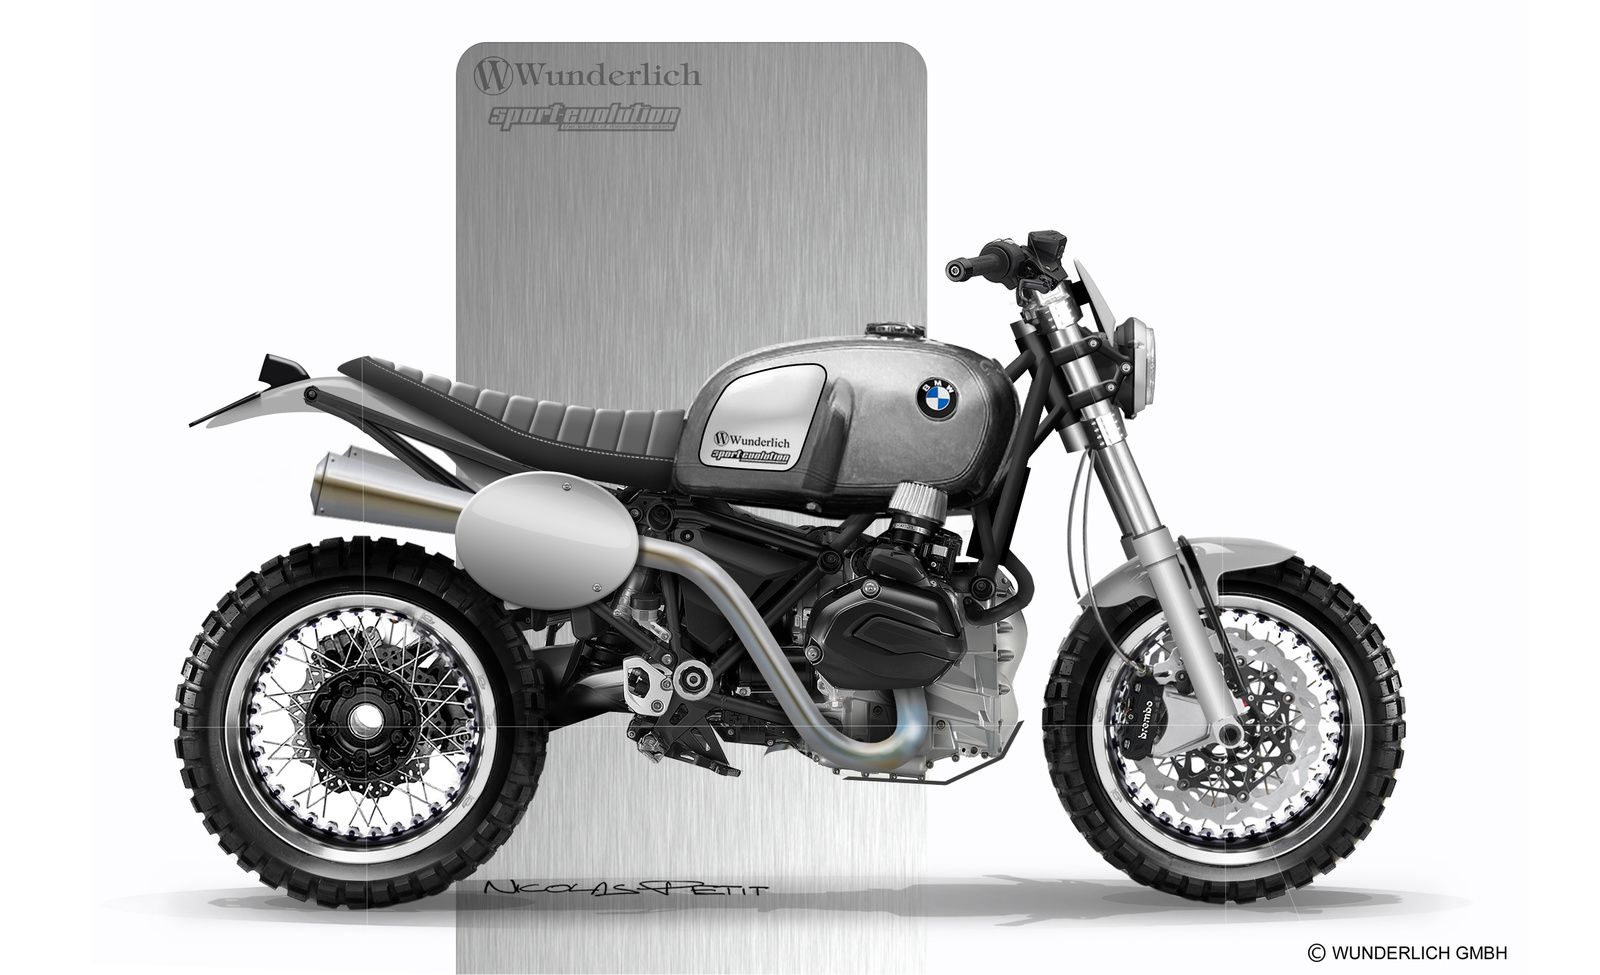 Wunderlich Scrambler video